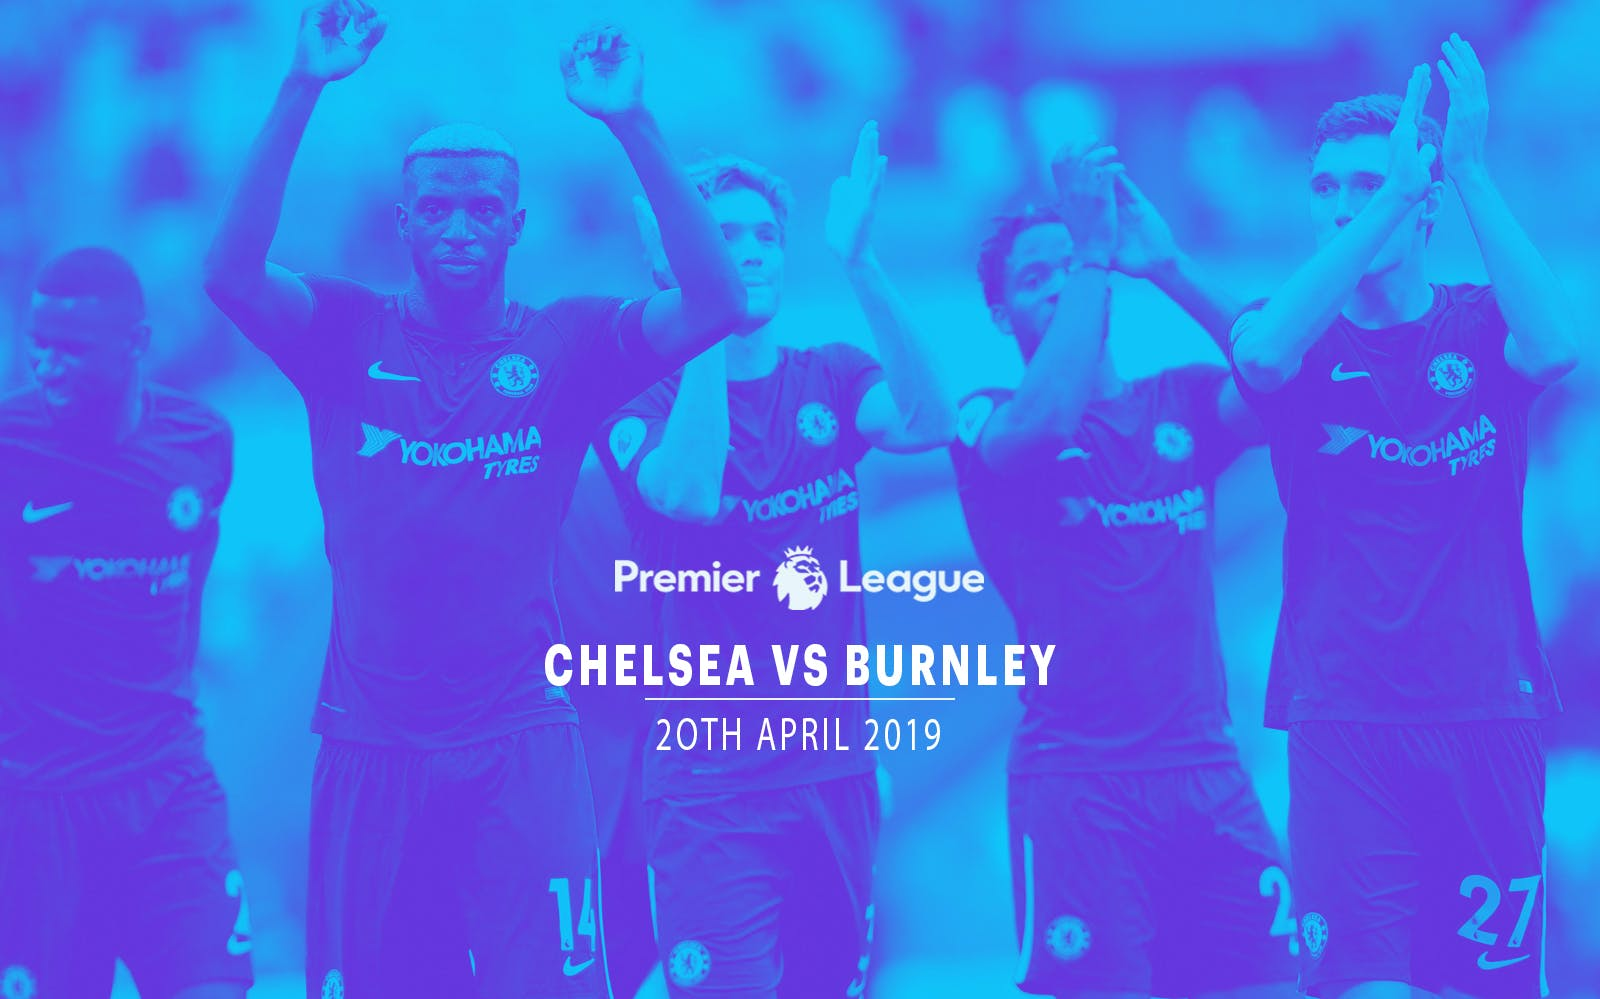 chelsea vs burnley - 20th apr'19-1